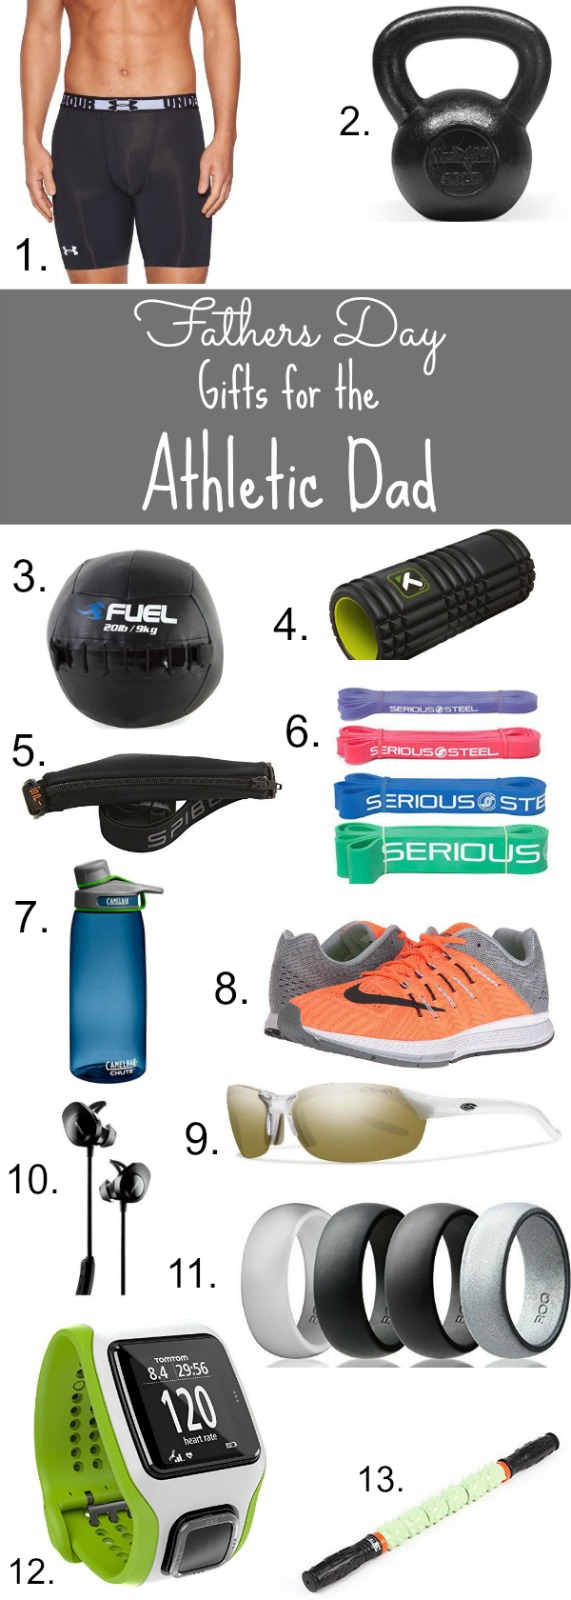 fathers day gift ideas for athletic dad